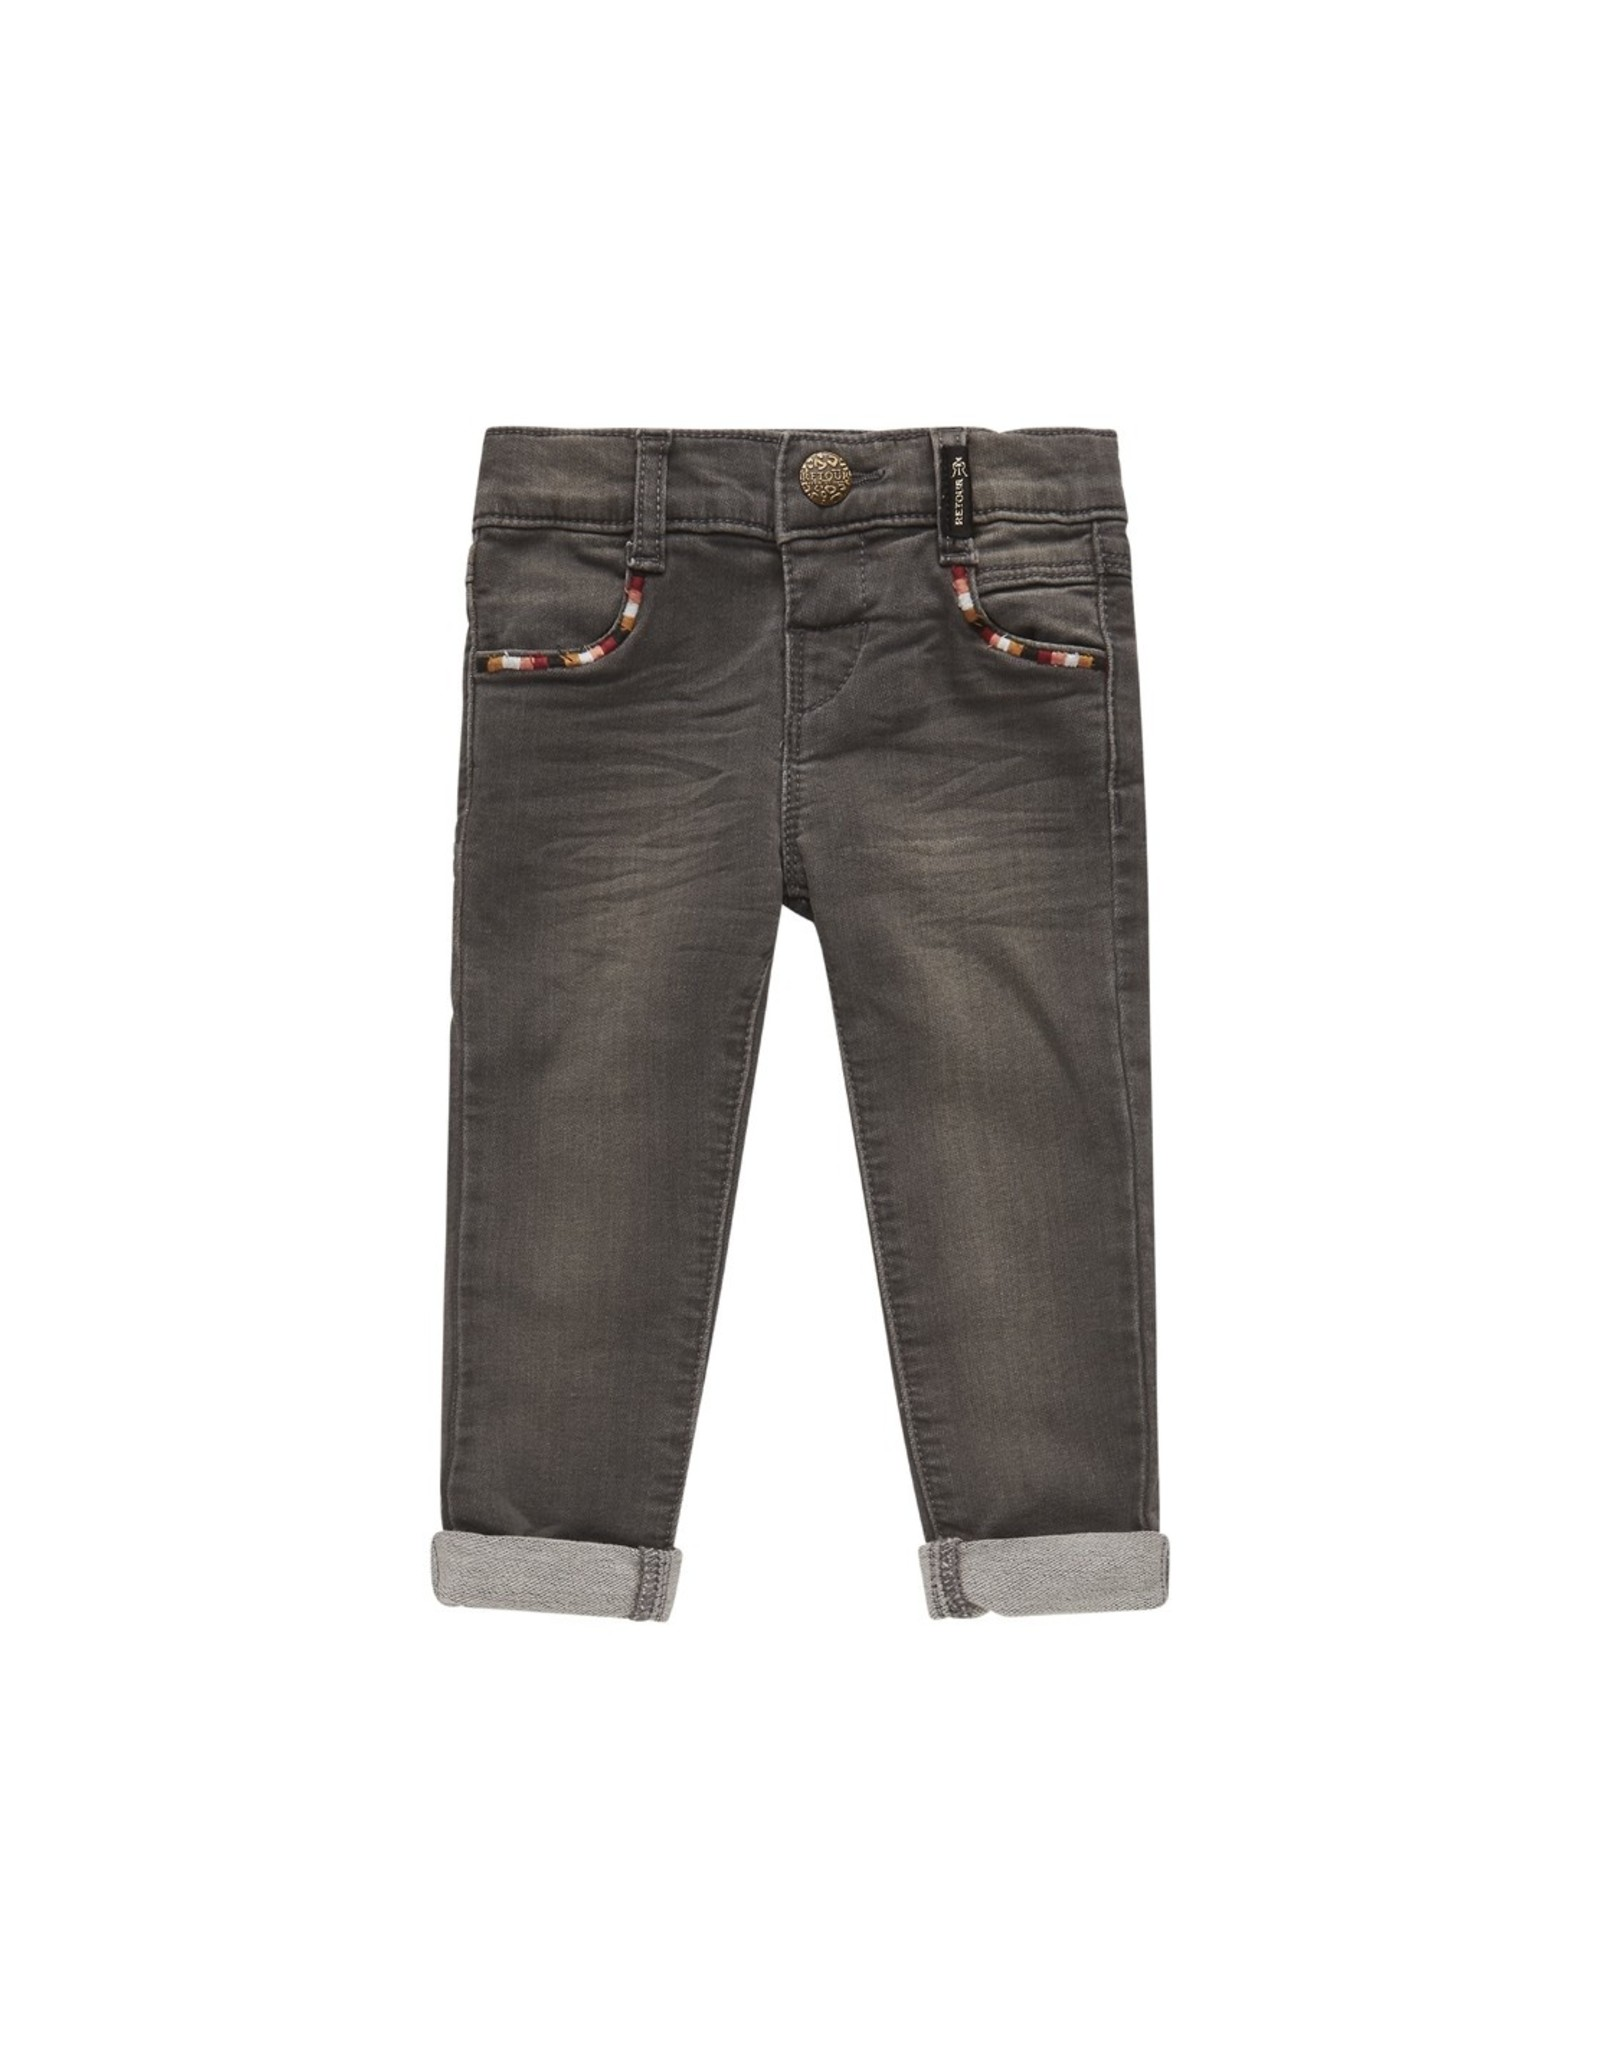 RETOUR RETOUR Mea Medium Grey Denim